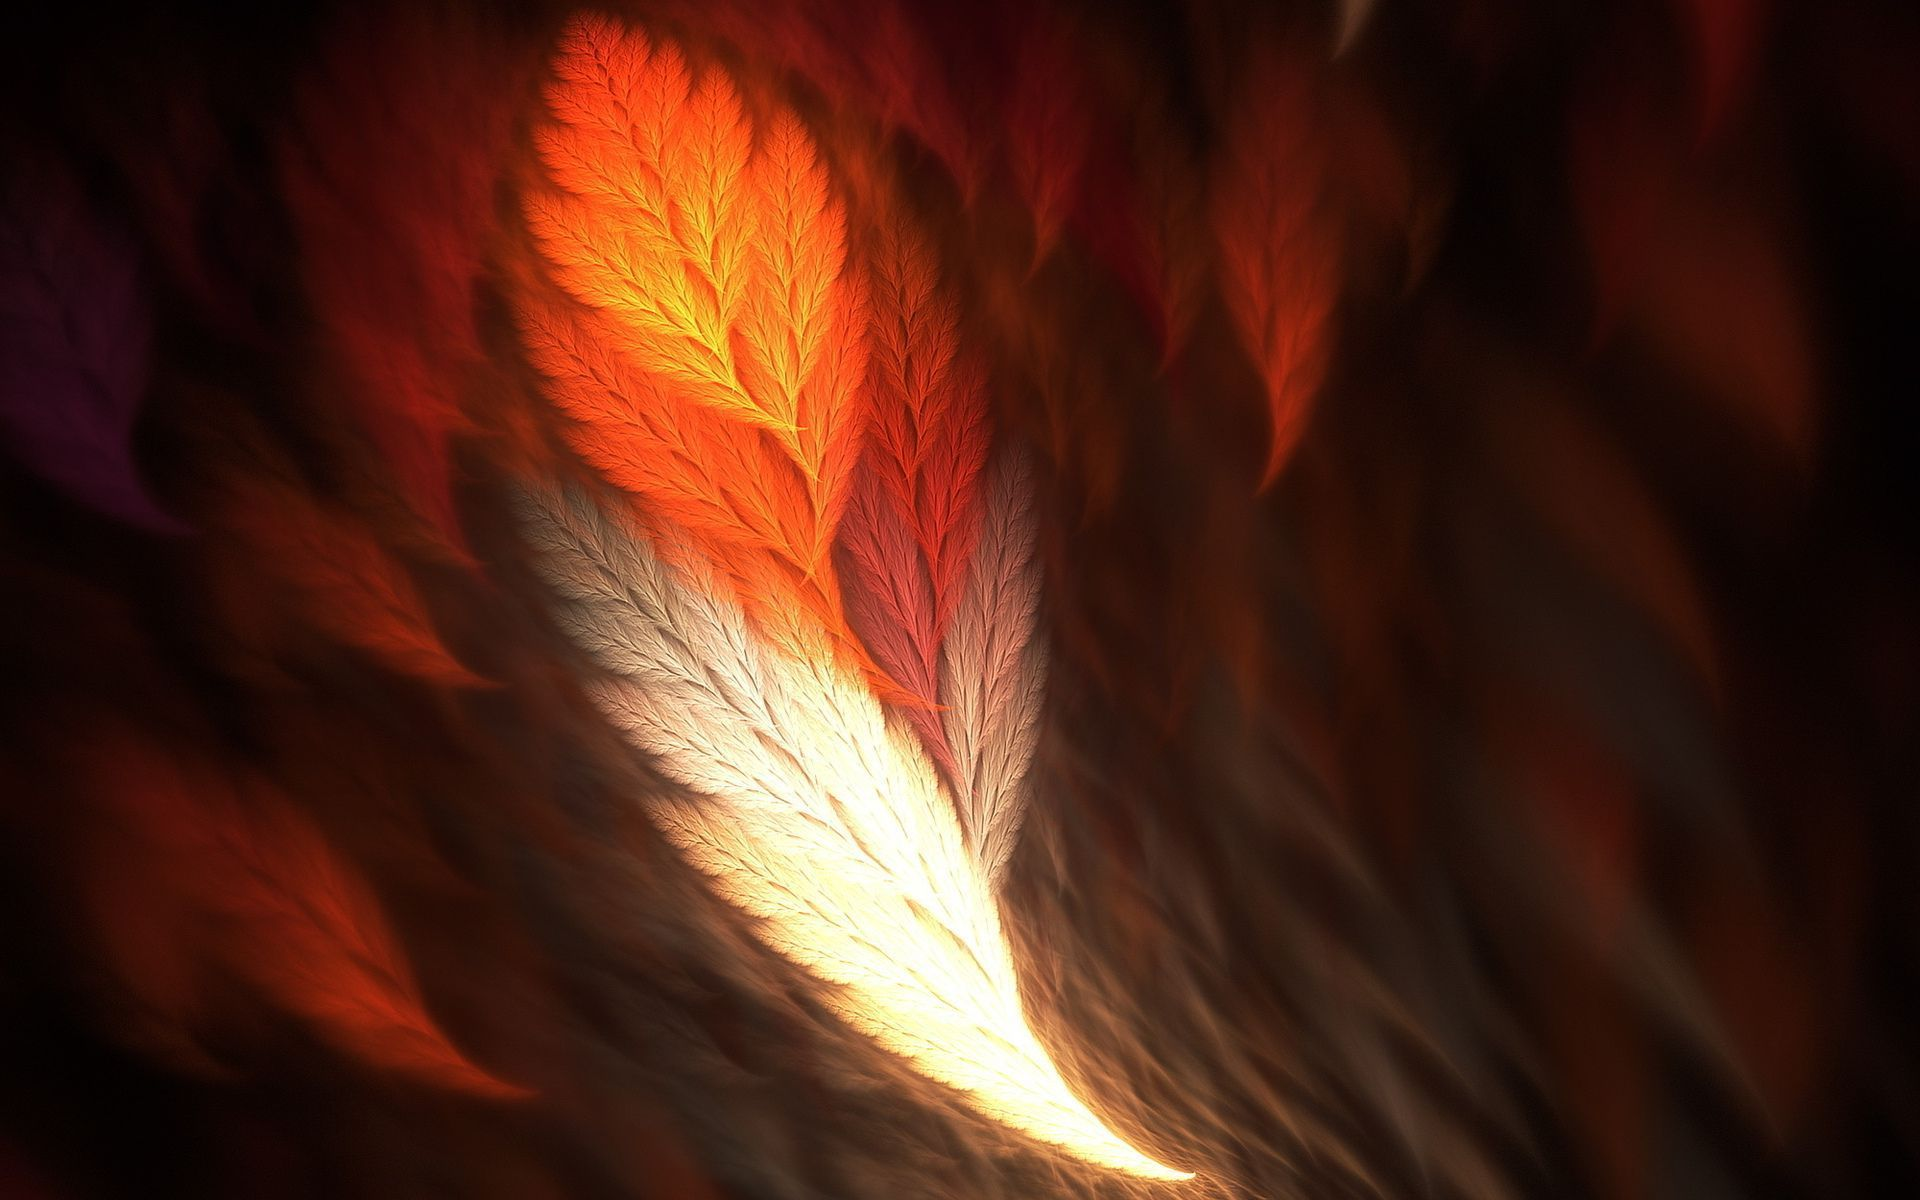 Fractal firey feather wallpaper Fractals and such 1920x1200